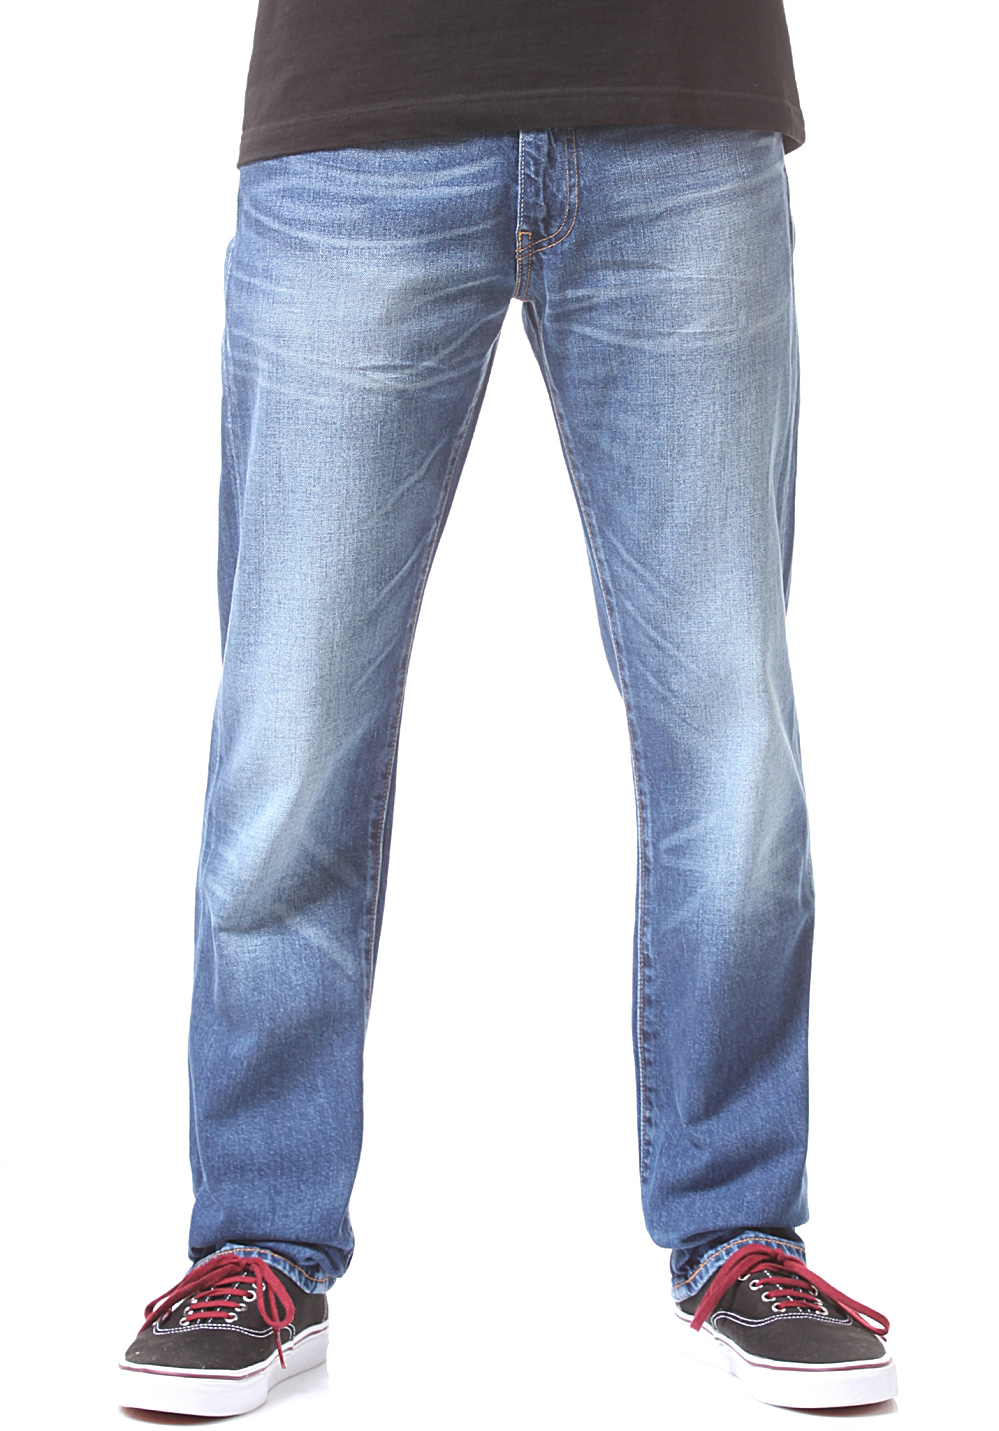 Men's regular fit jeans at Buckle are a balanced fit that is not too slim and not too relaxed. Find new styles on a classic fit that is designed to last.